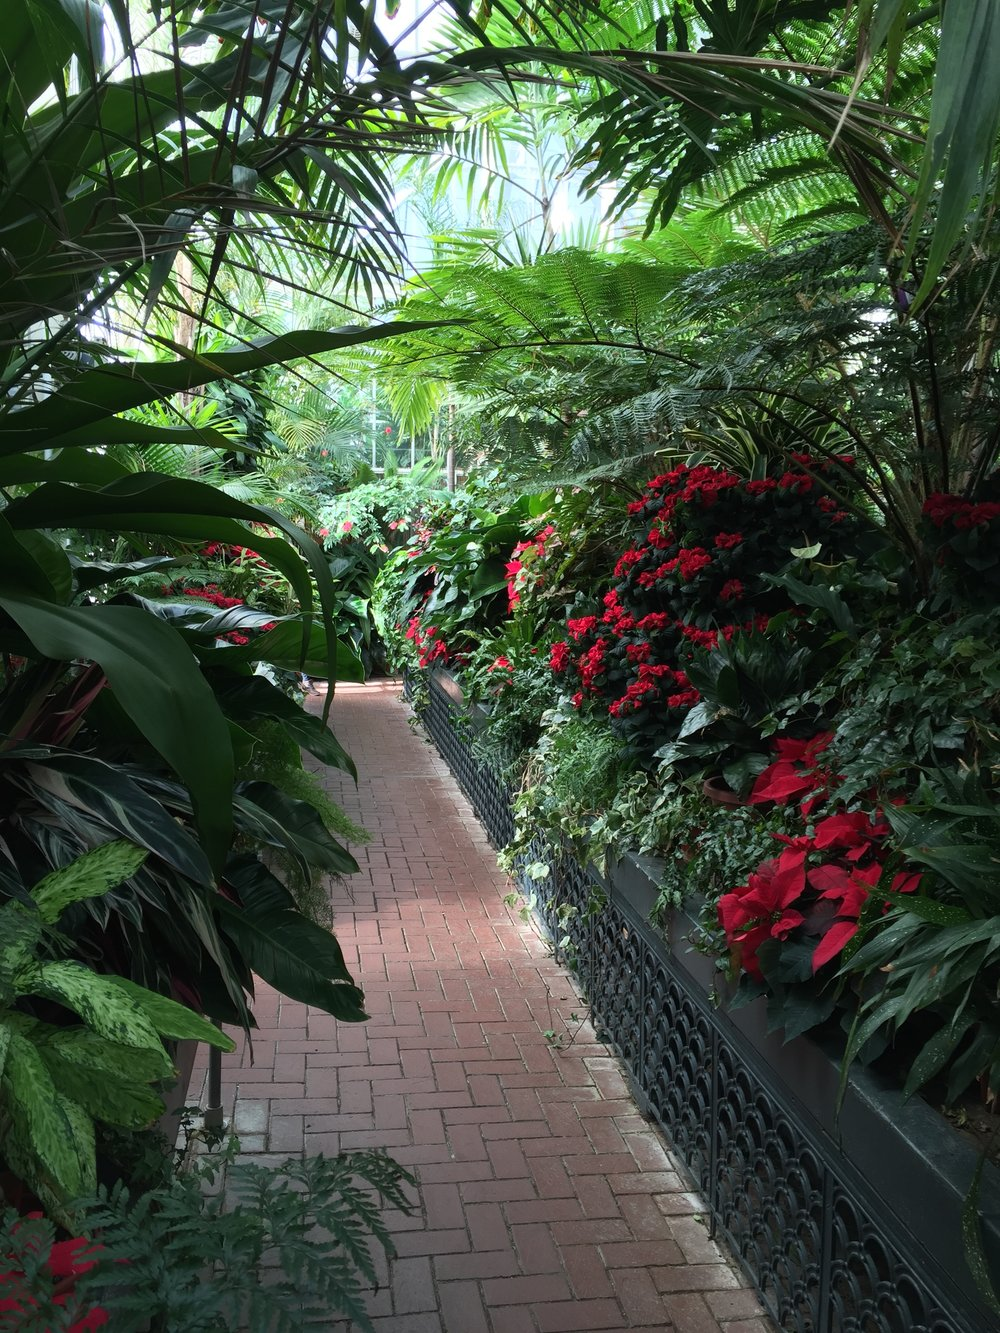 Inside the greenhouse in the adjacent botanical gardens.